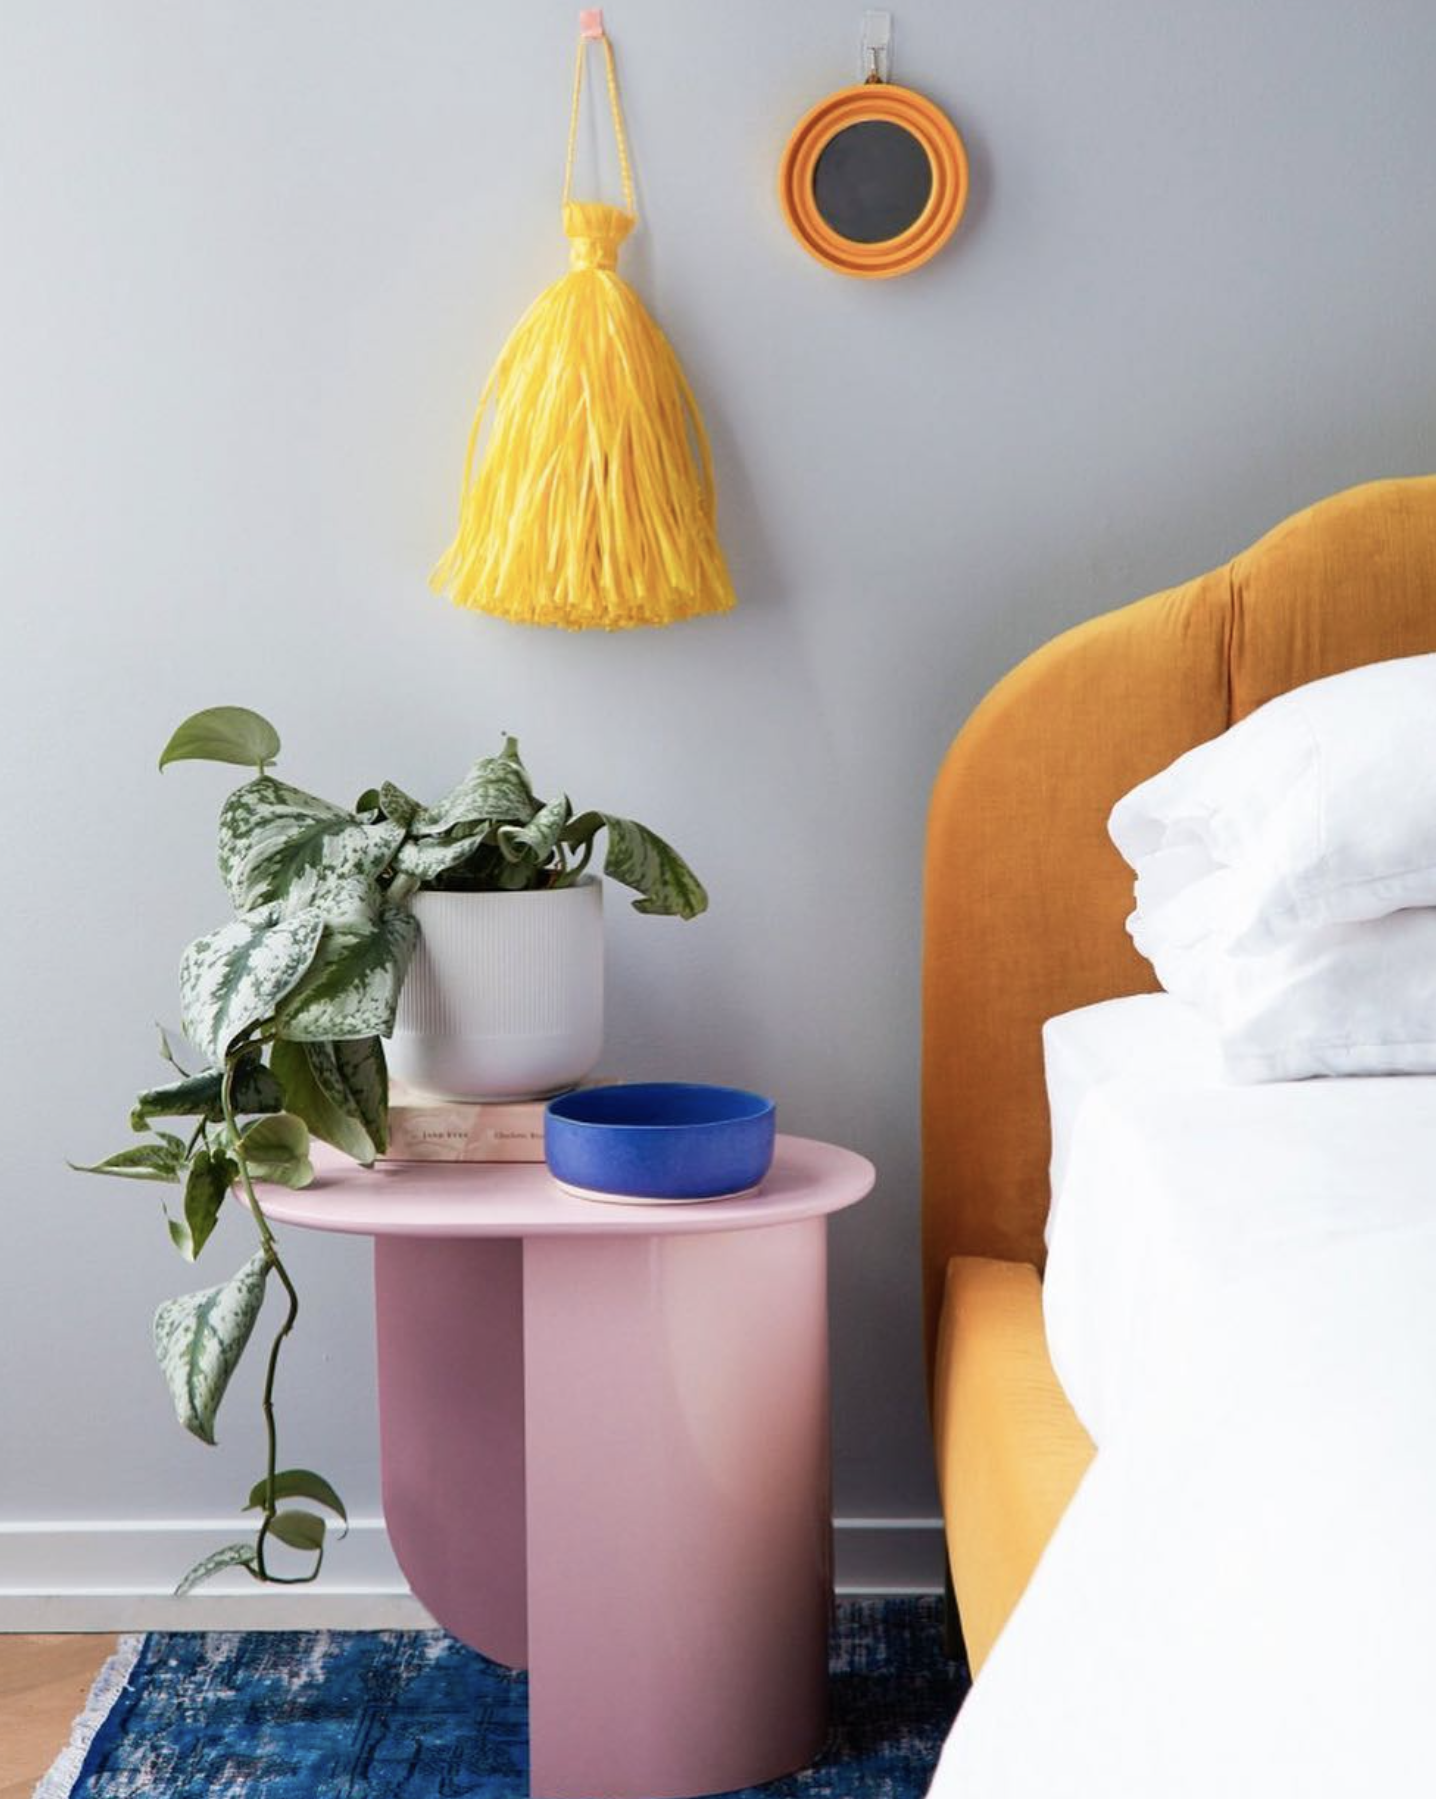 Best of Behr: Blue Gray Paint Colors - Image via @behrpaint, photo by @jessicaantola feat. wall paint color: 'Hush' by Behr